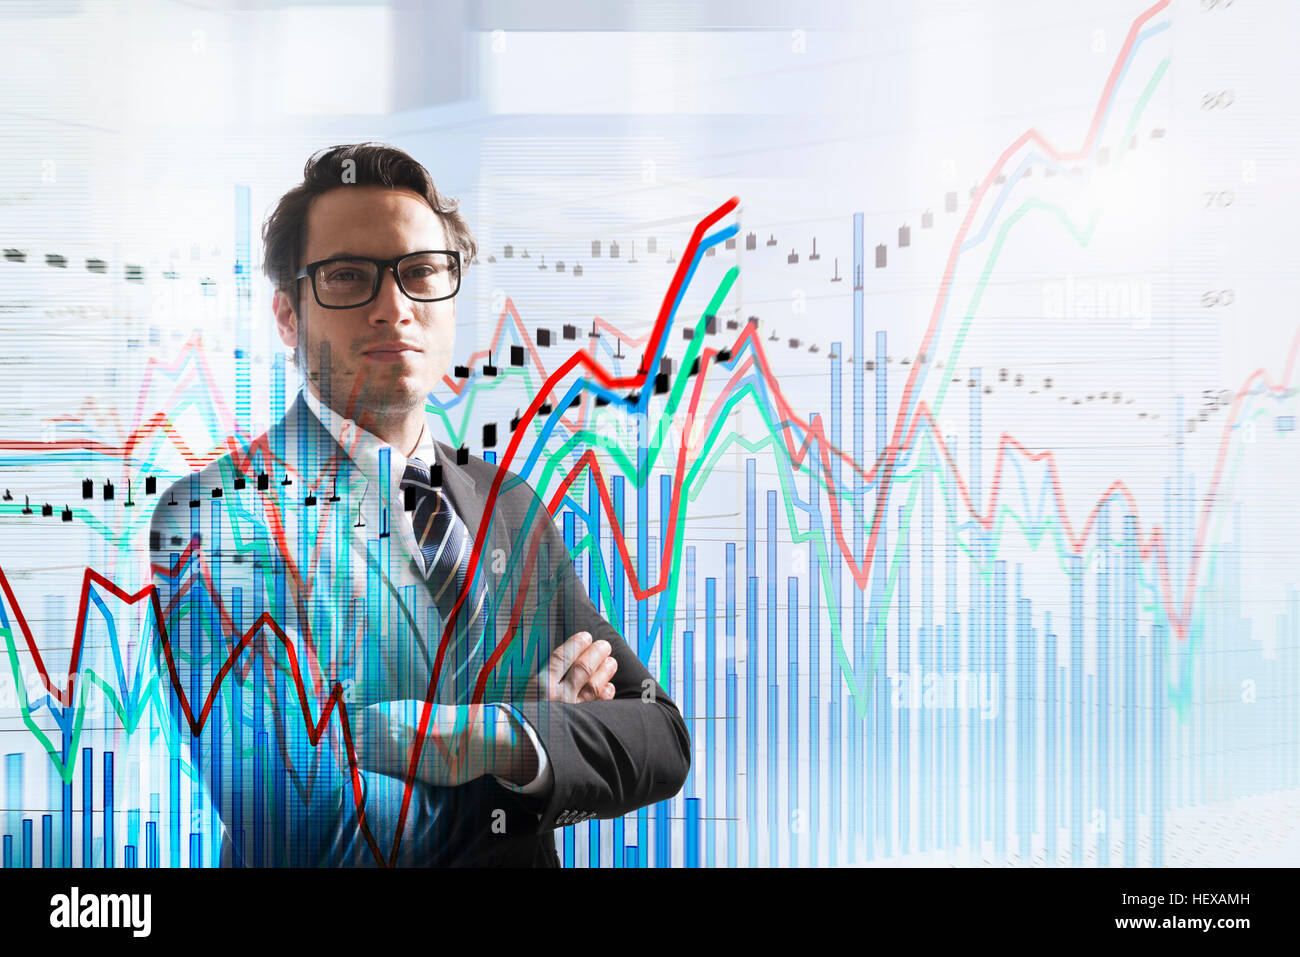 Conceptual image of businessman with graph data - Stock Image